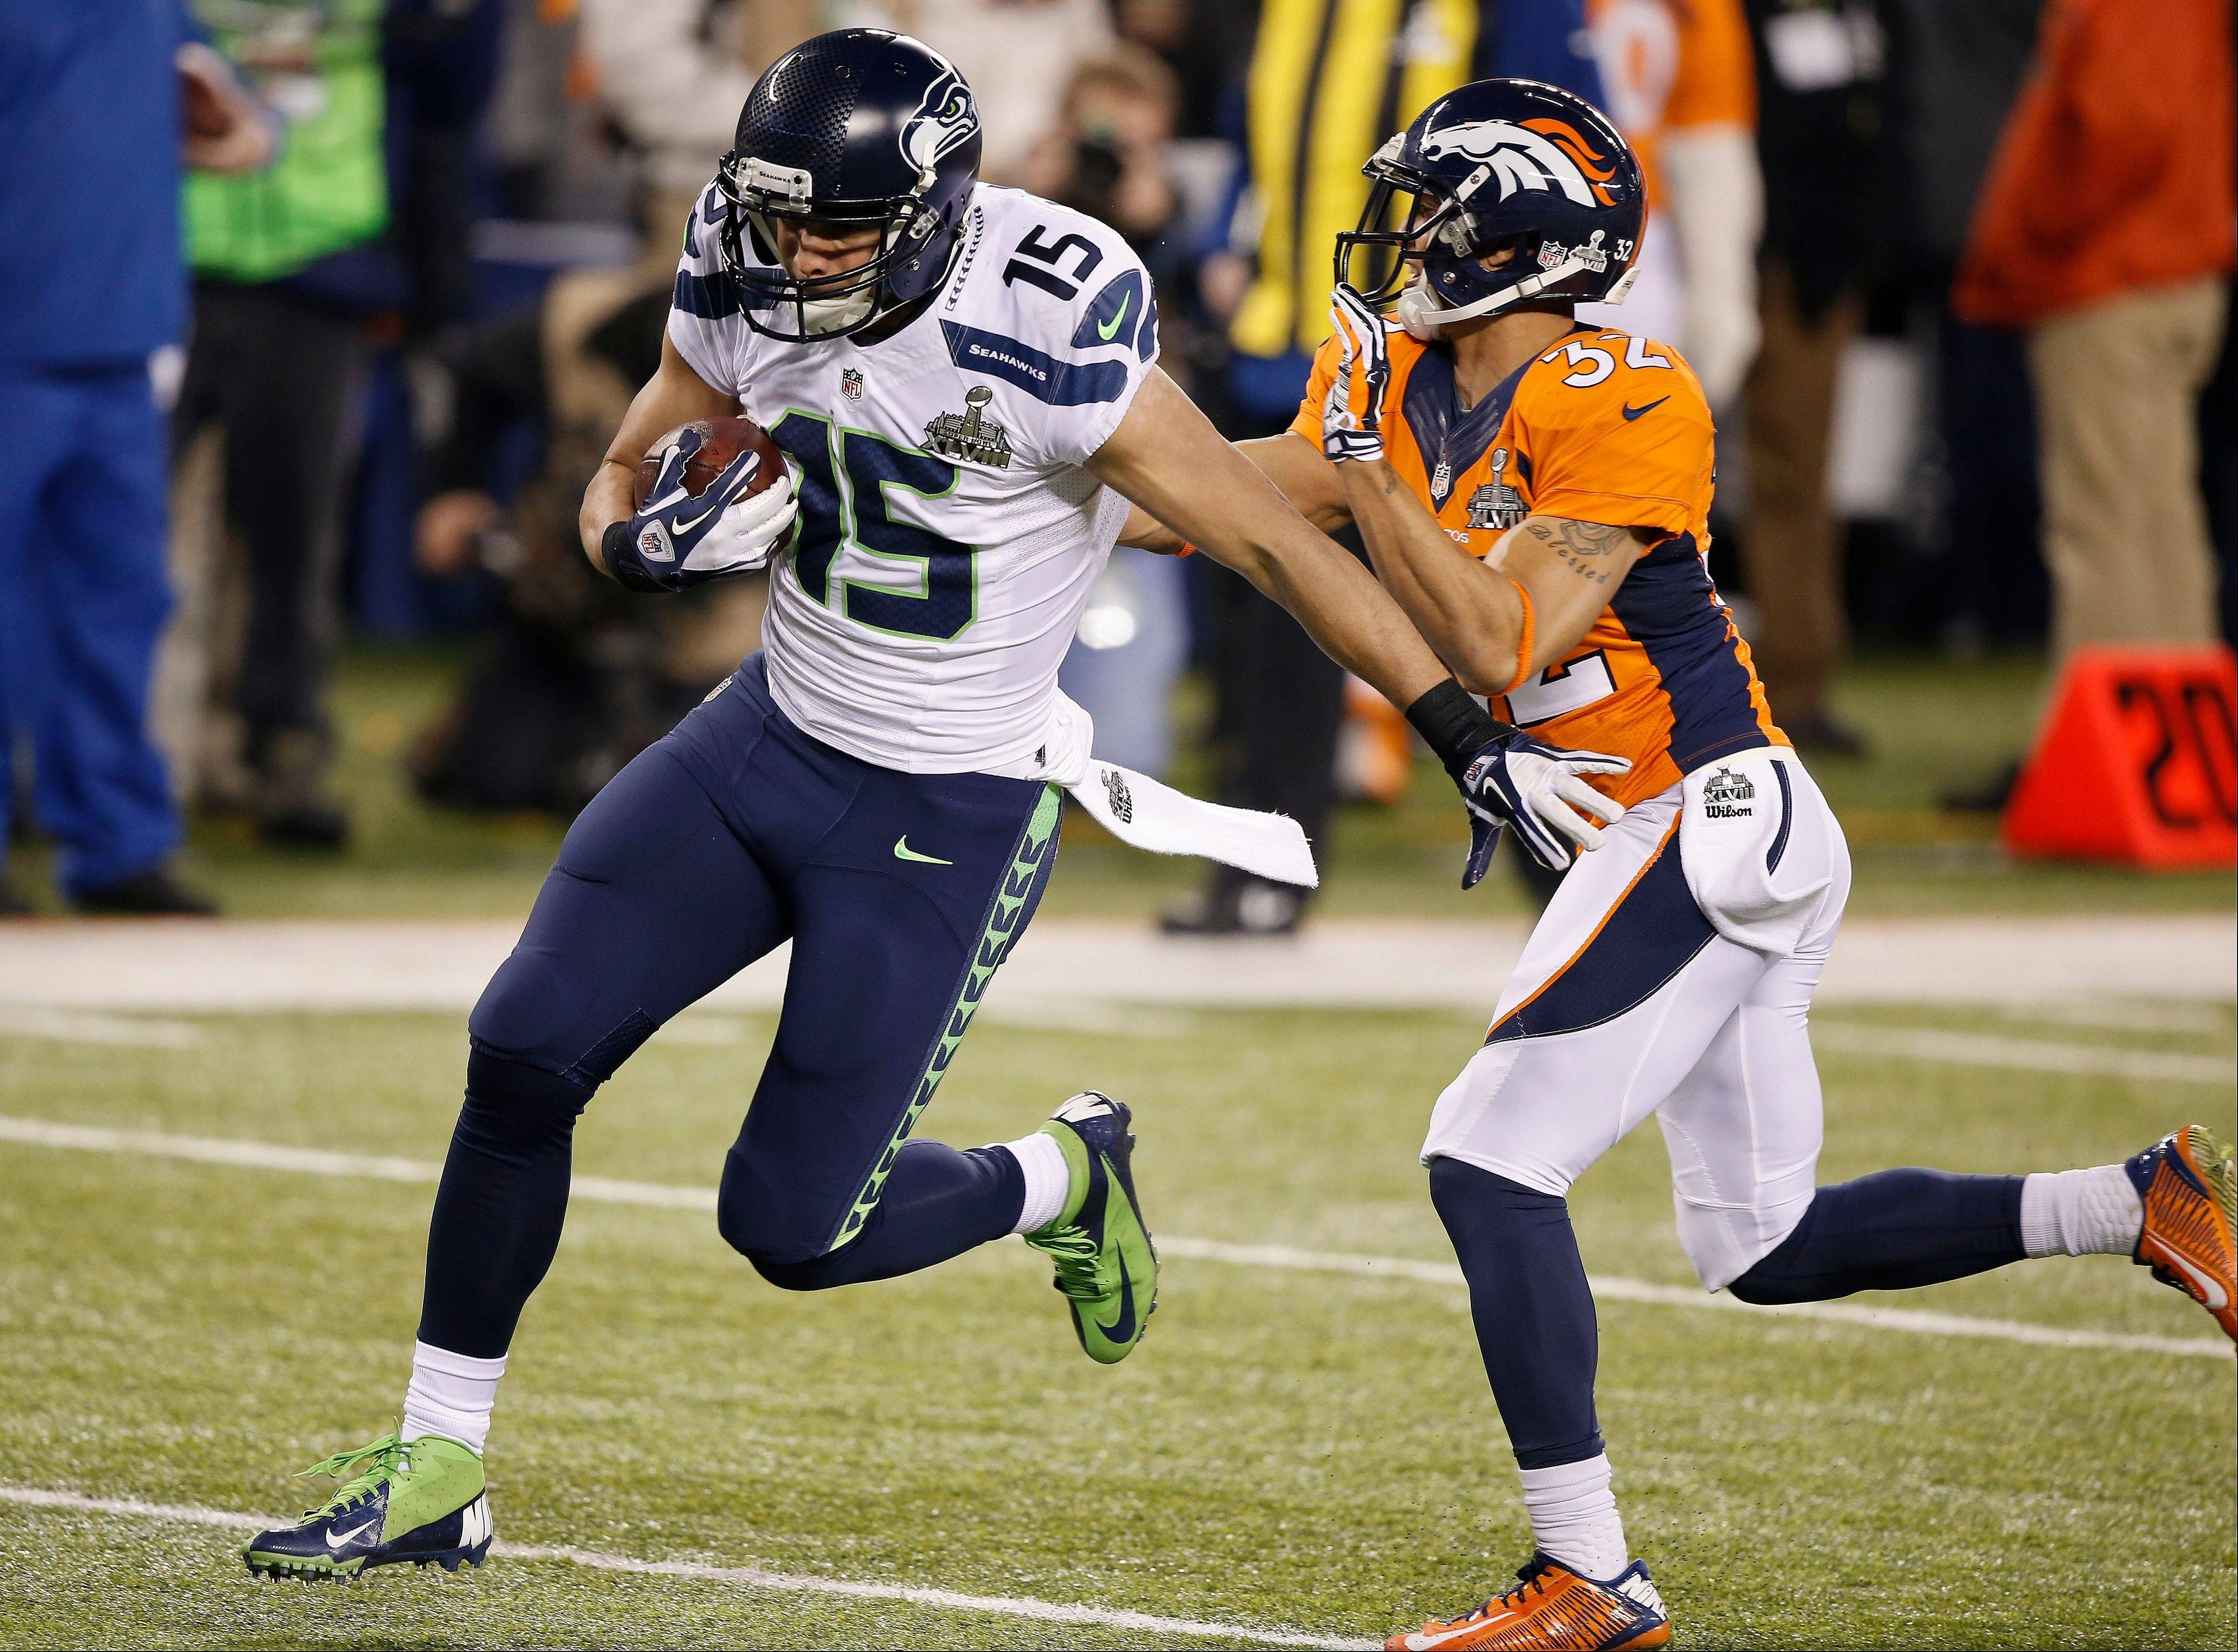 Denver Broncos cornerback Tony Carter (32) misses a tackle as Seattle Seahawks' Jermaine Kearse (15) runs for a touchdown during the second half.